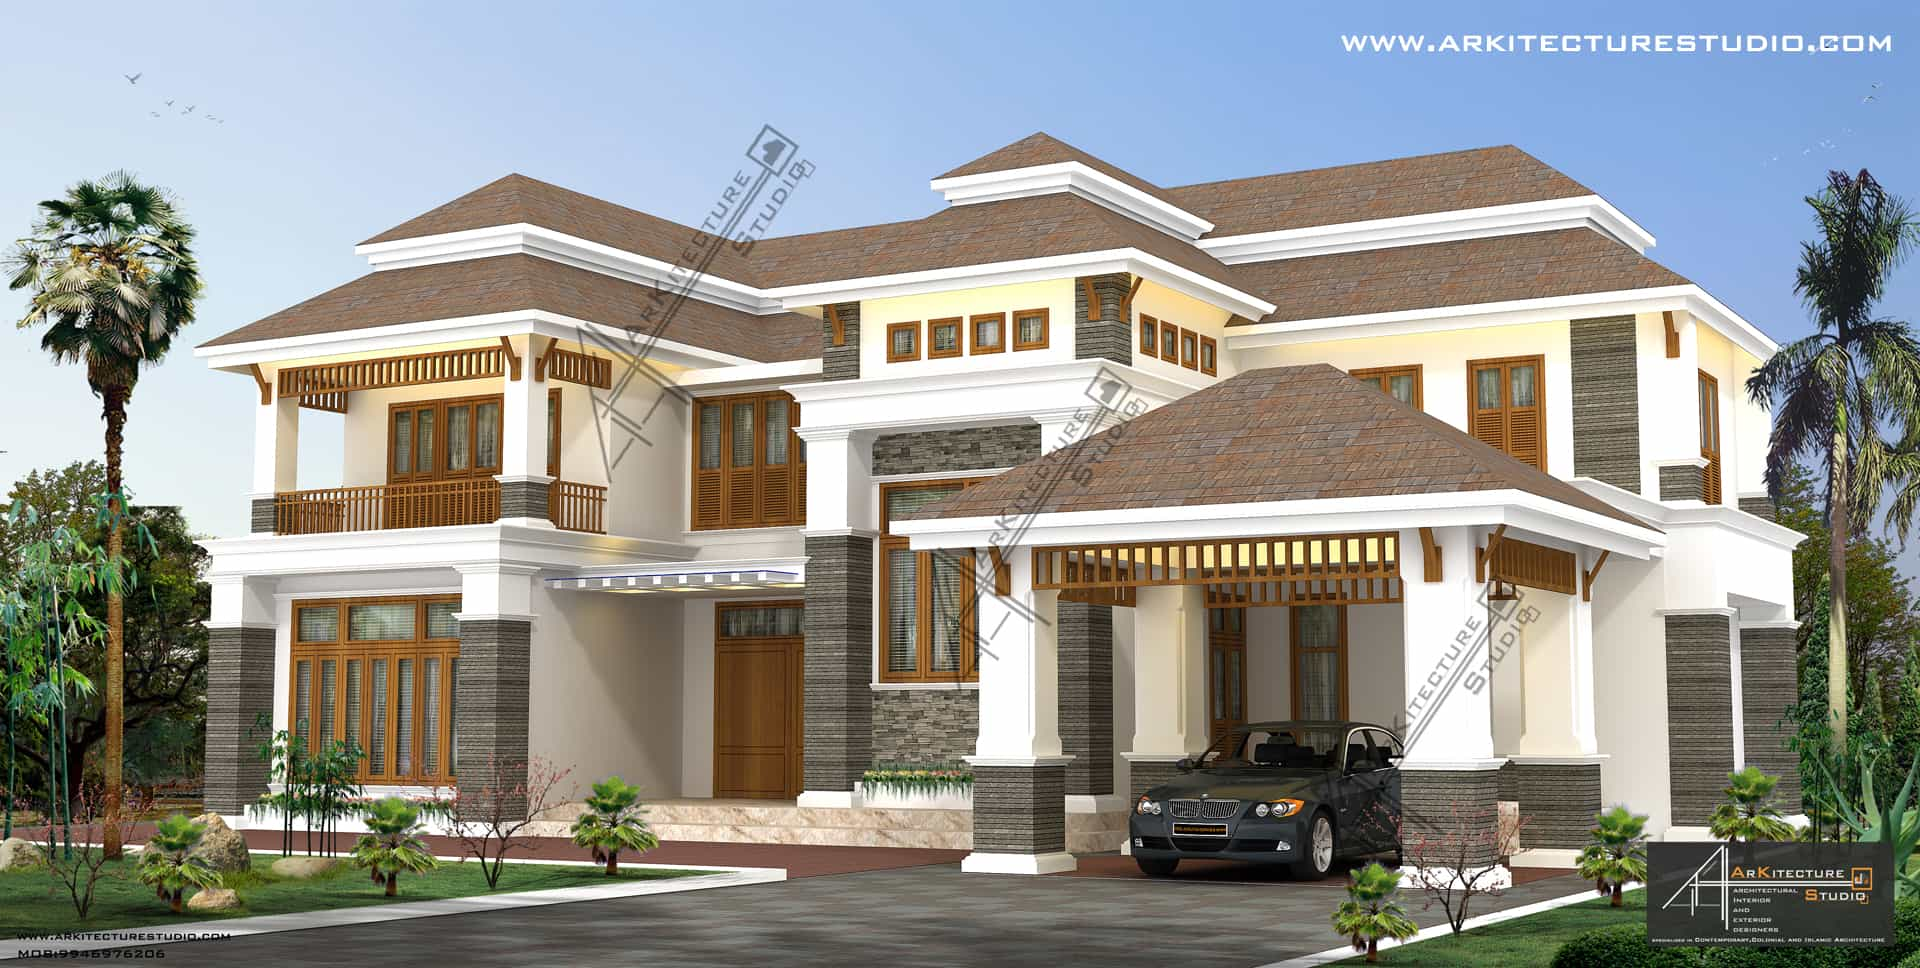 Colonial style house designs in kerala at 3500 sqft 5000 for 3000 sq ft house plans kerala style